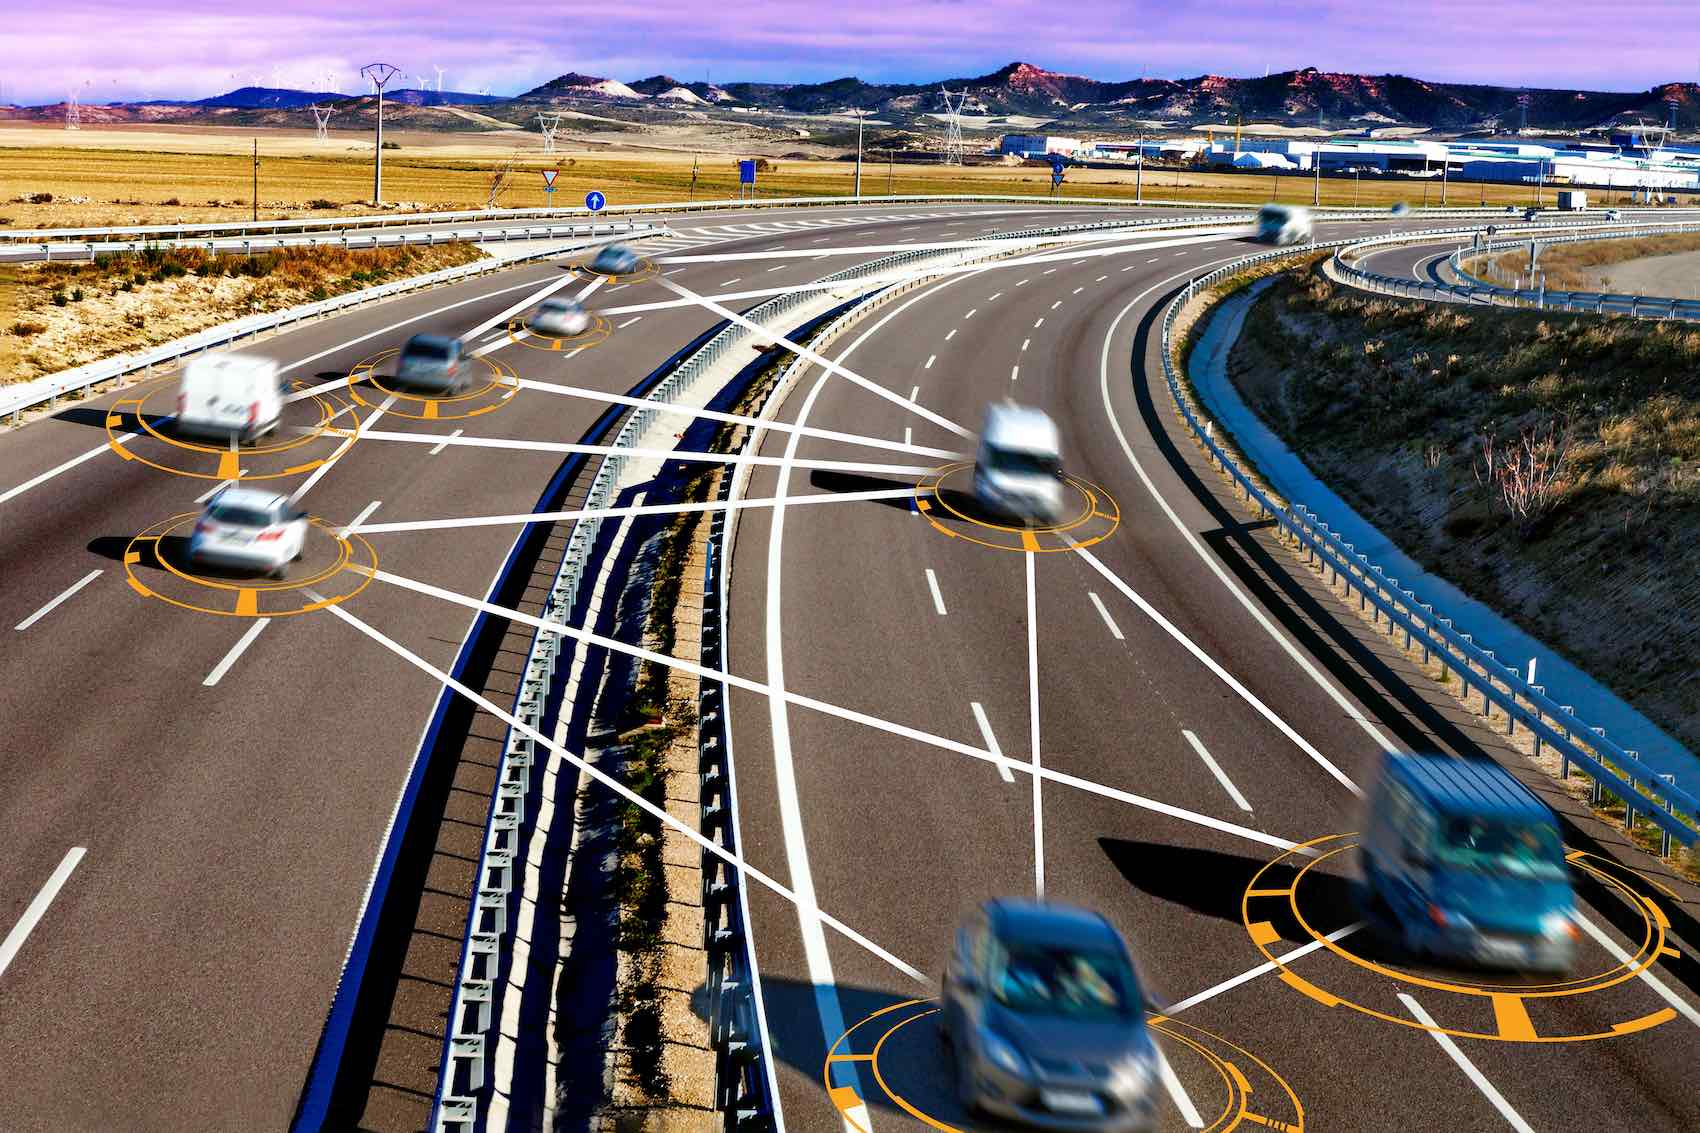 TechNative | Self-Driving Data: The Role of Automation in Autonomous Vehicles